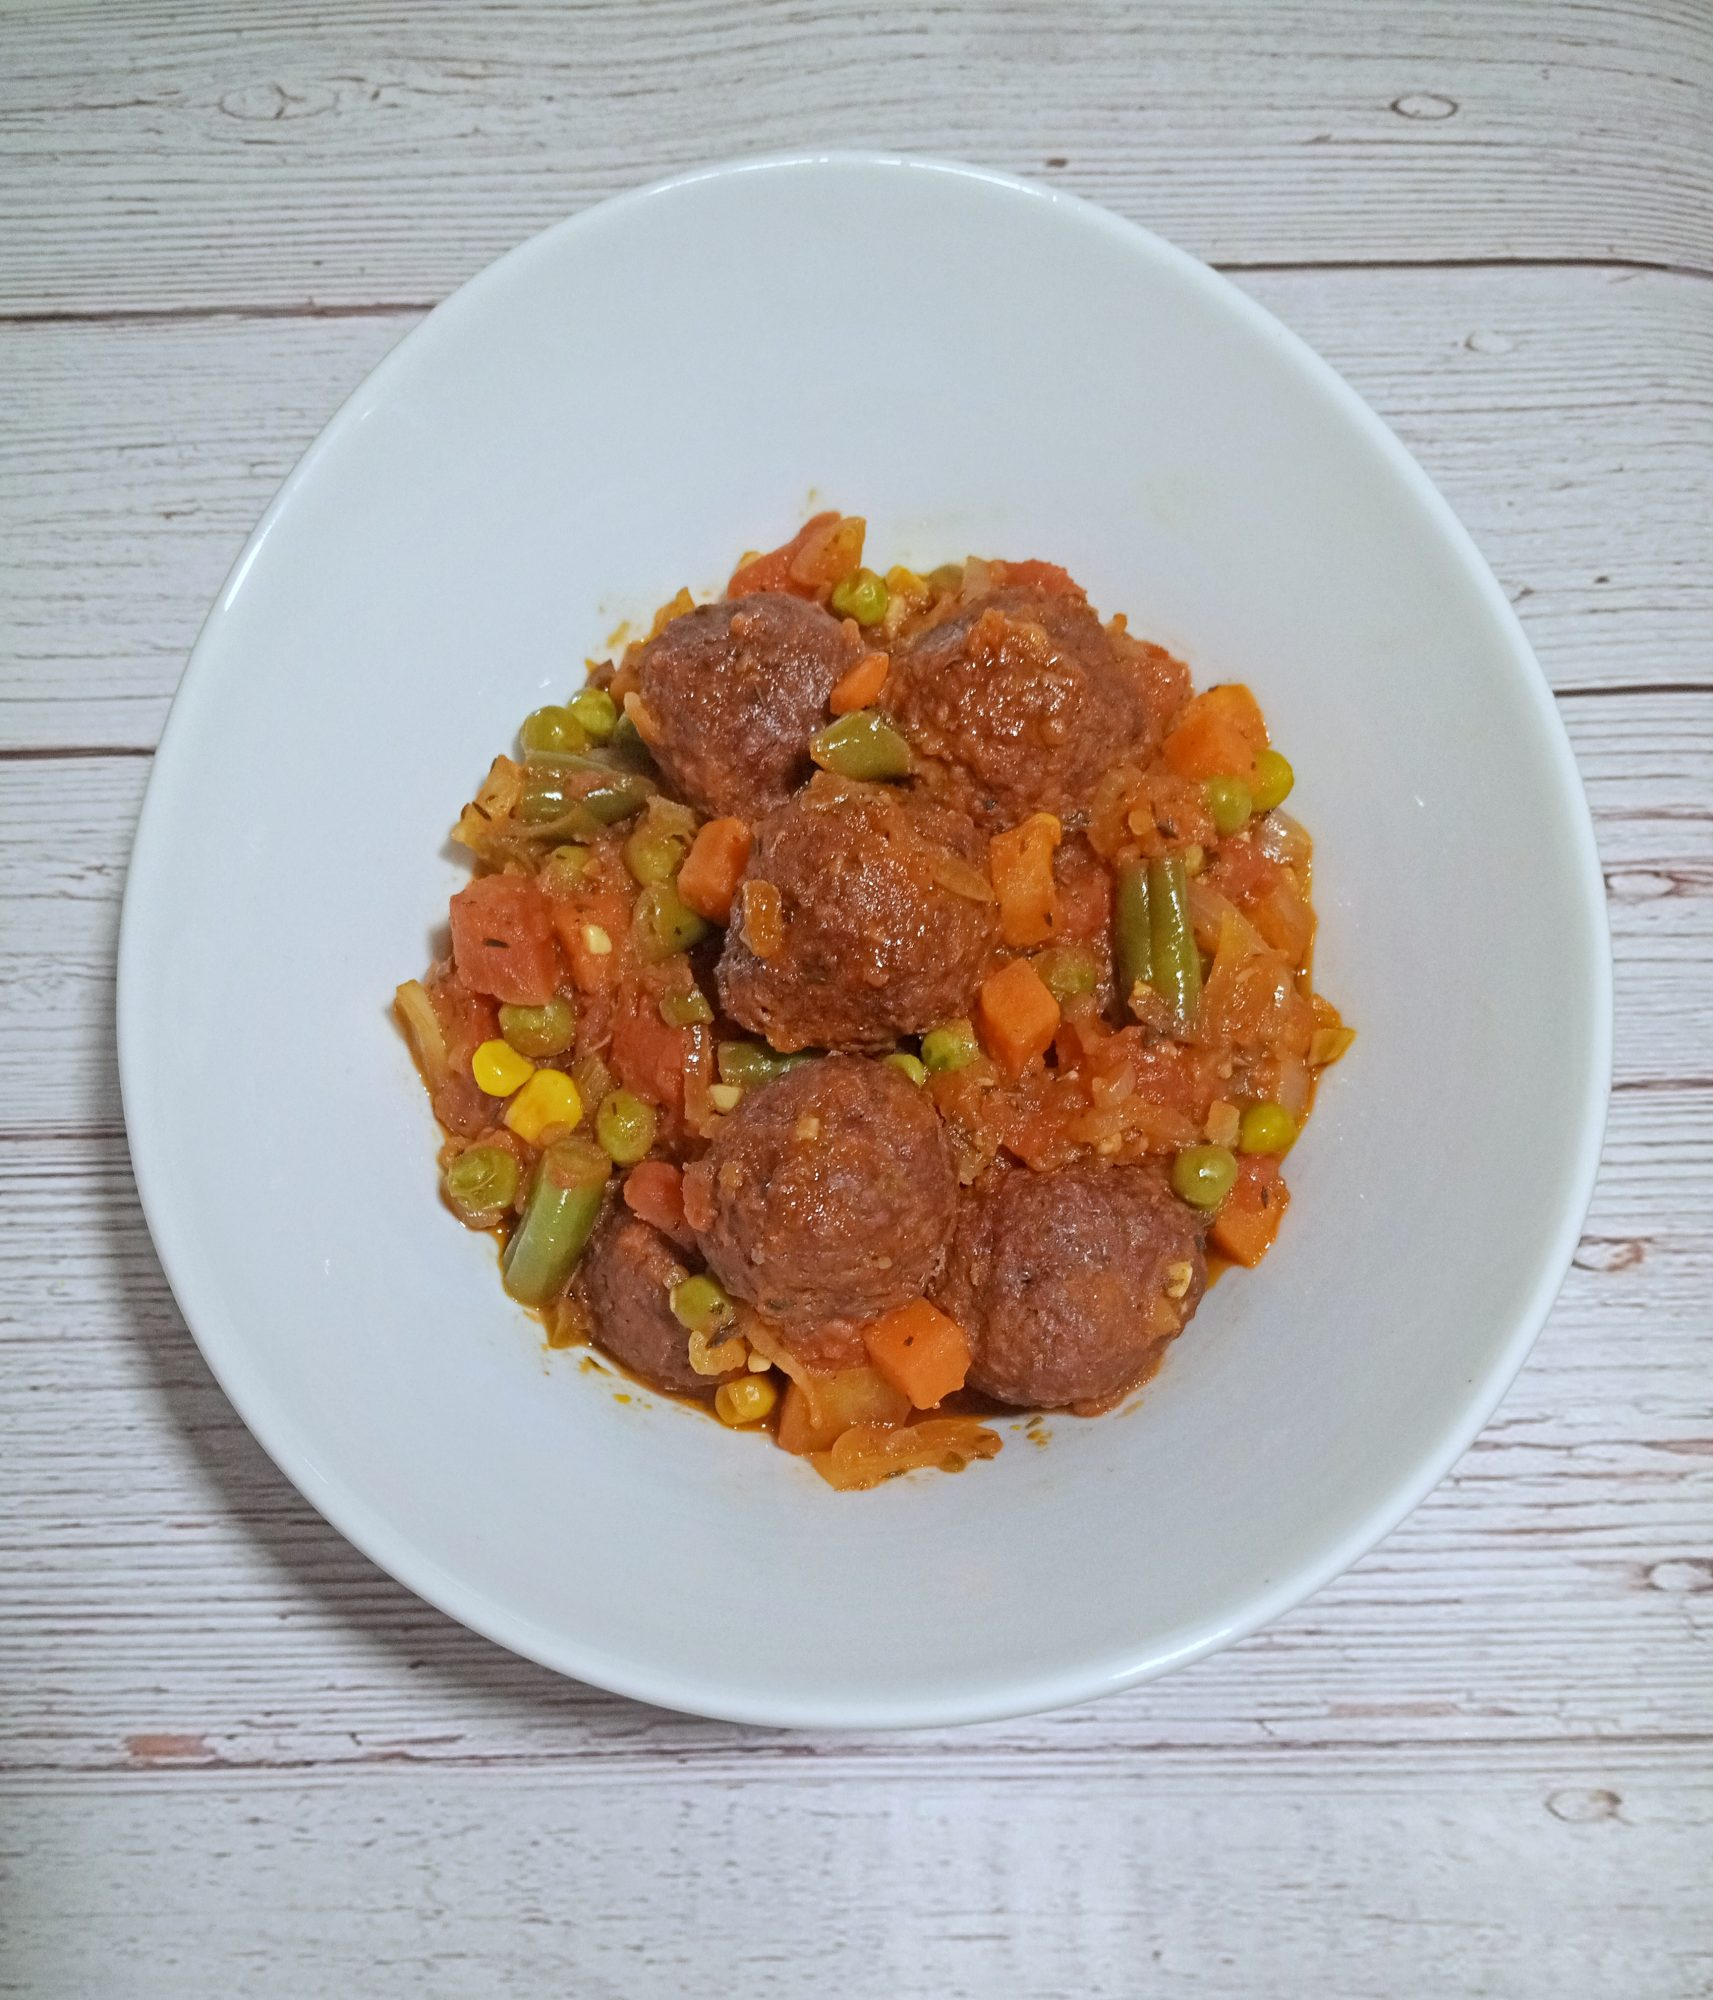 Meatless Meatballs with Vegetable Sauce